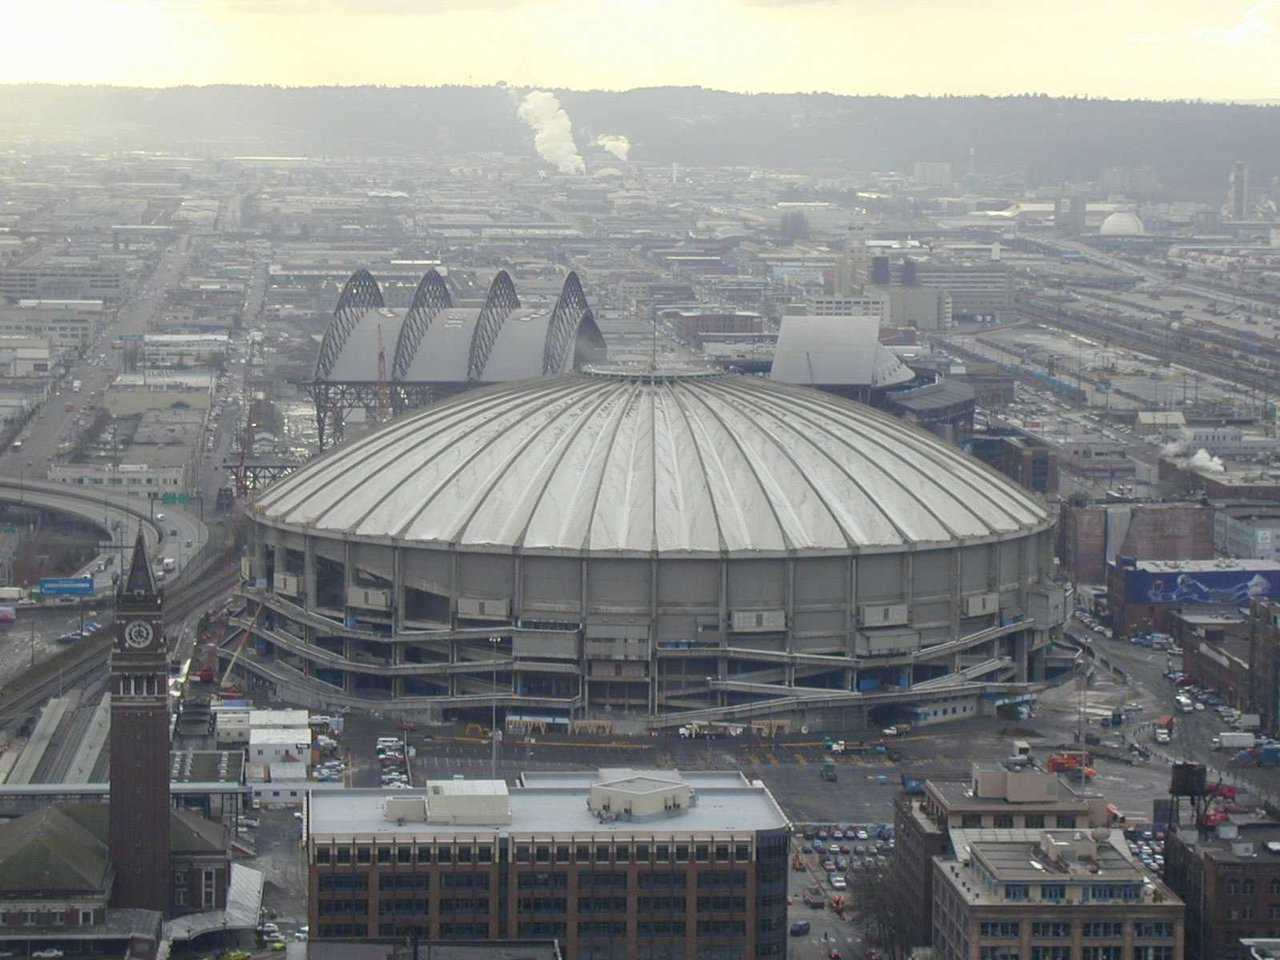 Kingdome — Seattle, Washington — A $67-million concrete multipurpose stadium, the Kingdome's seating was designed for football and opened with a soccer match on April 9, 1976.